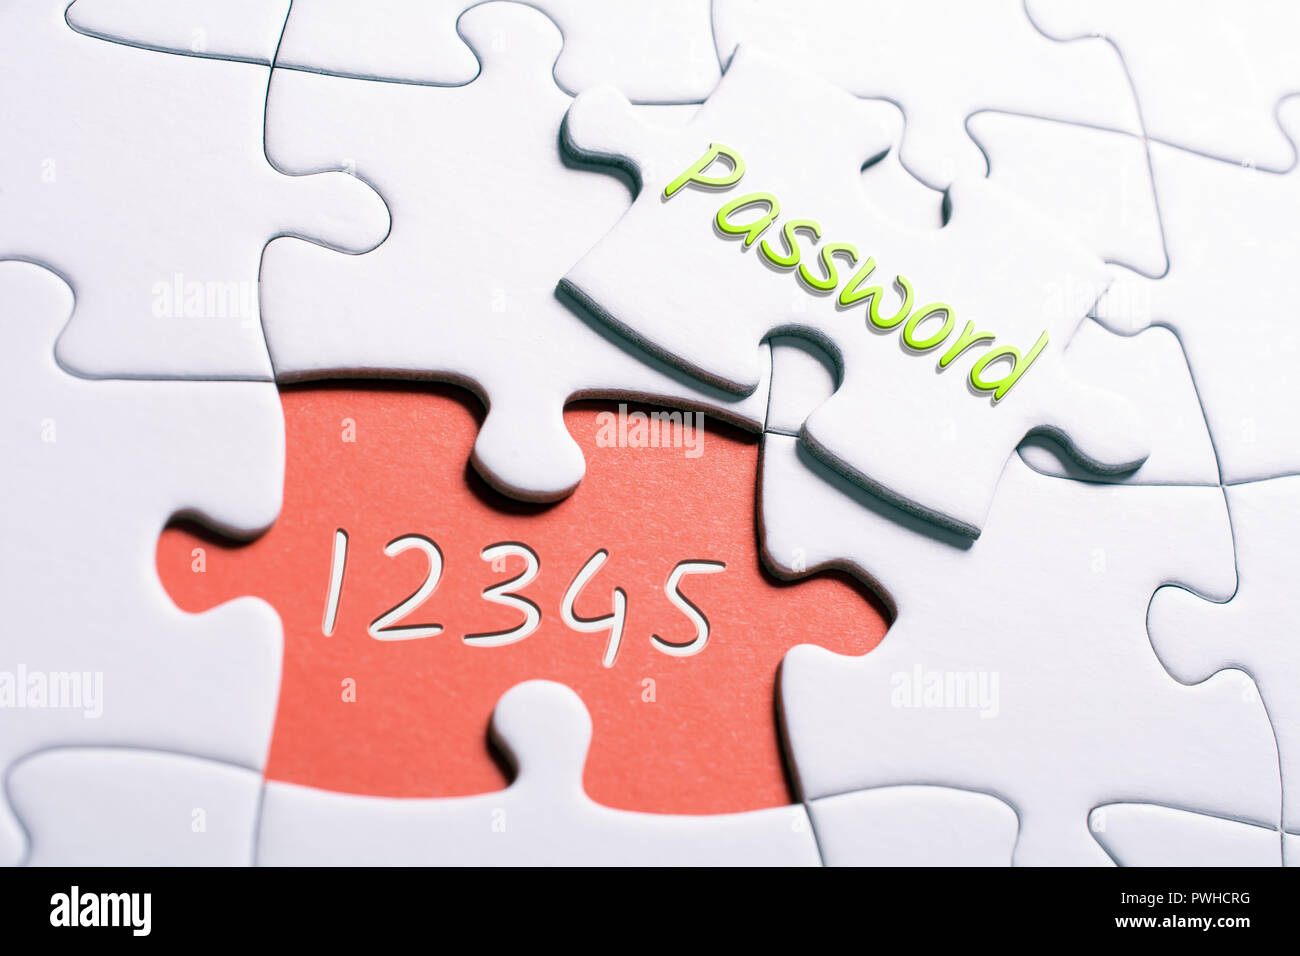 The Word Password And The Numbers 12345 In Missing Piece Jigsaw Puzzle - Insecure Password Concept - Stock Image